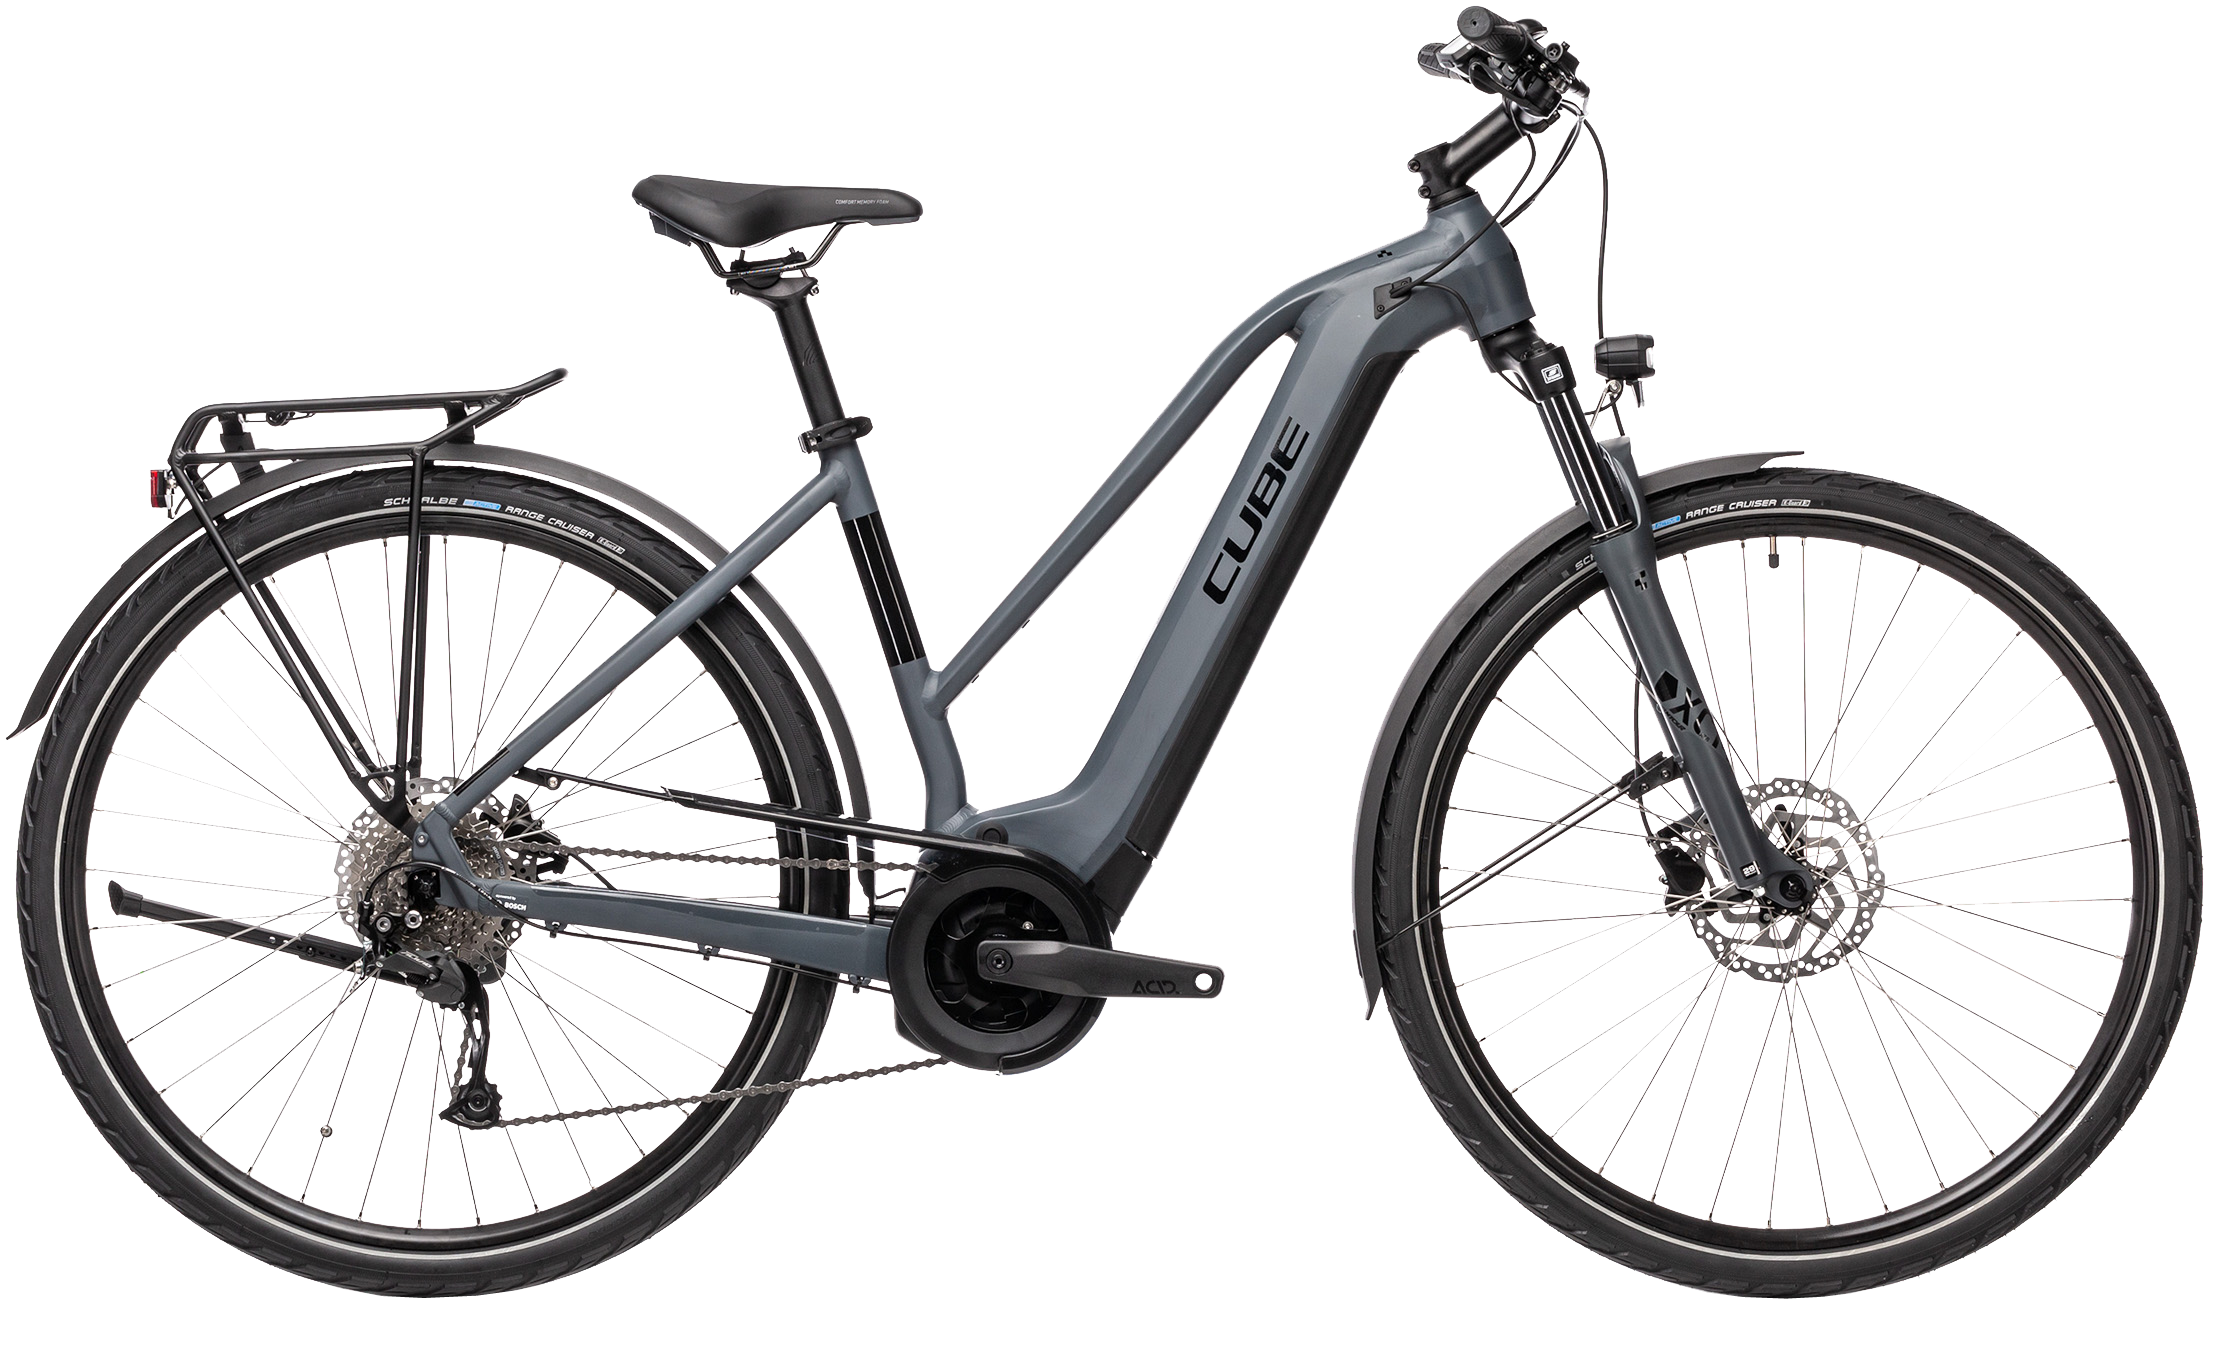 https://w8w5m3f8.stackpathcdn.com/20265/vtc-electrique-cube-touring-hybrid-one-400-500-625wh-cadre-mixte.jpg